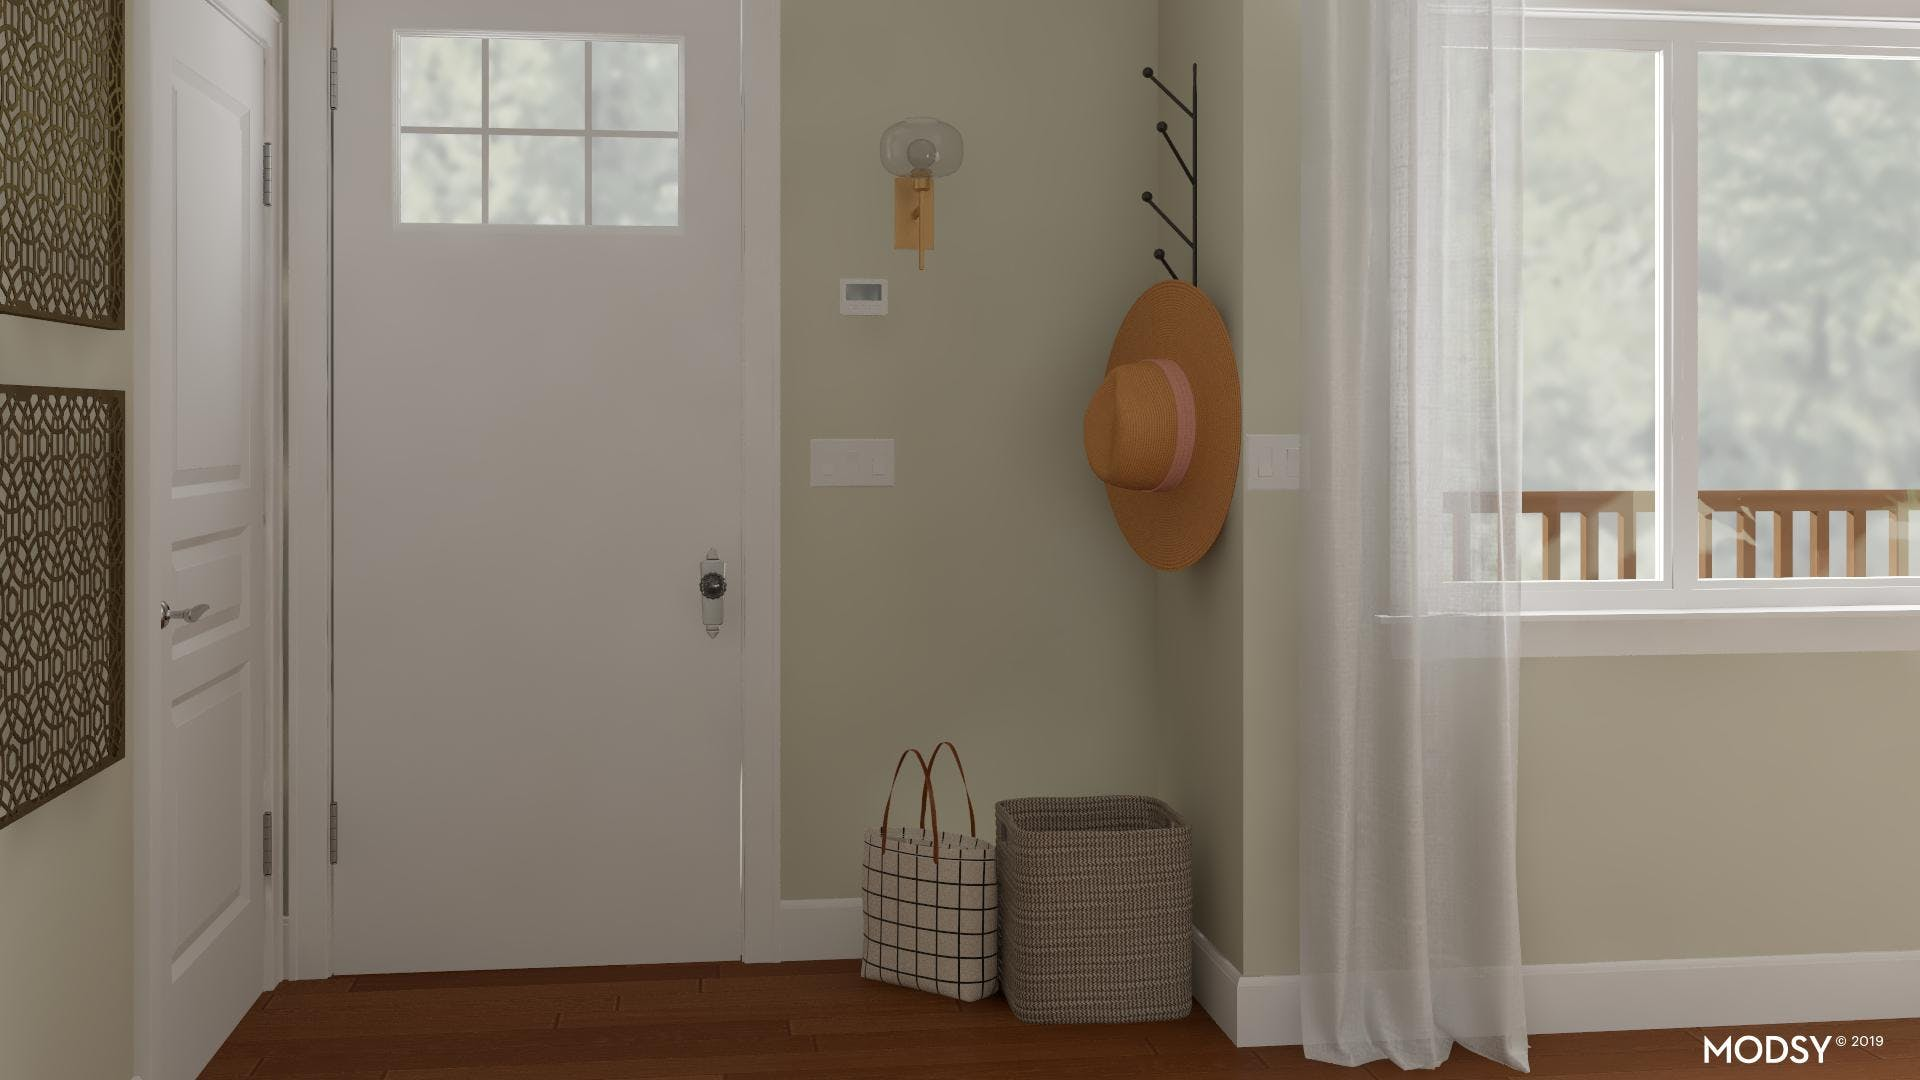 Clutter-Free Entry